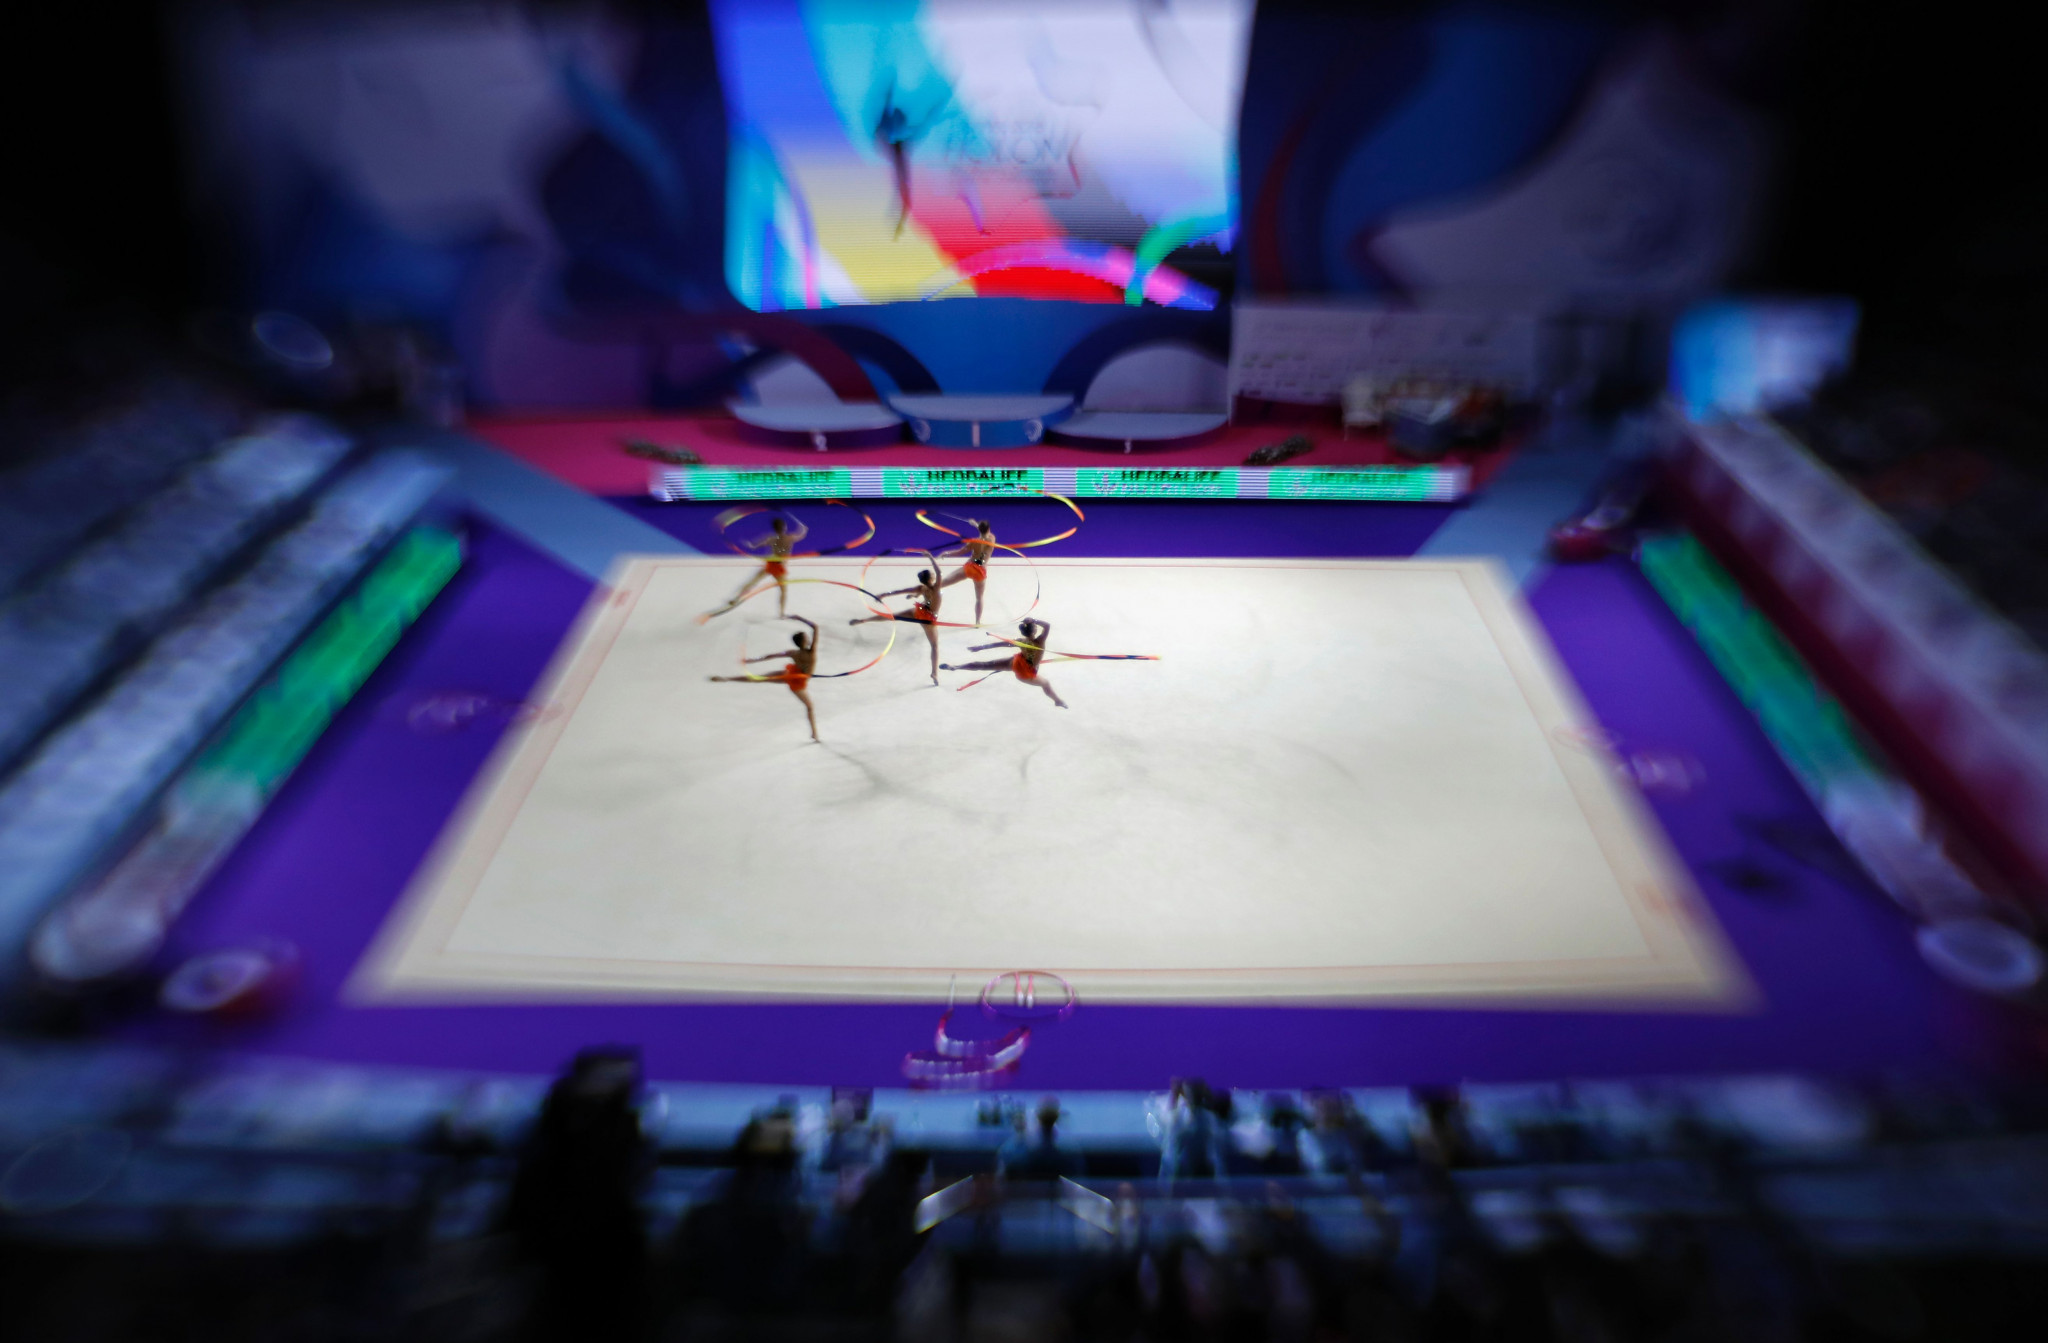 The independent investigation was launched last year following allegations by former gymnasts ©Getty Images